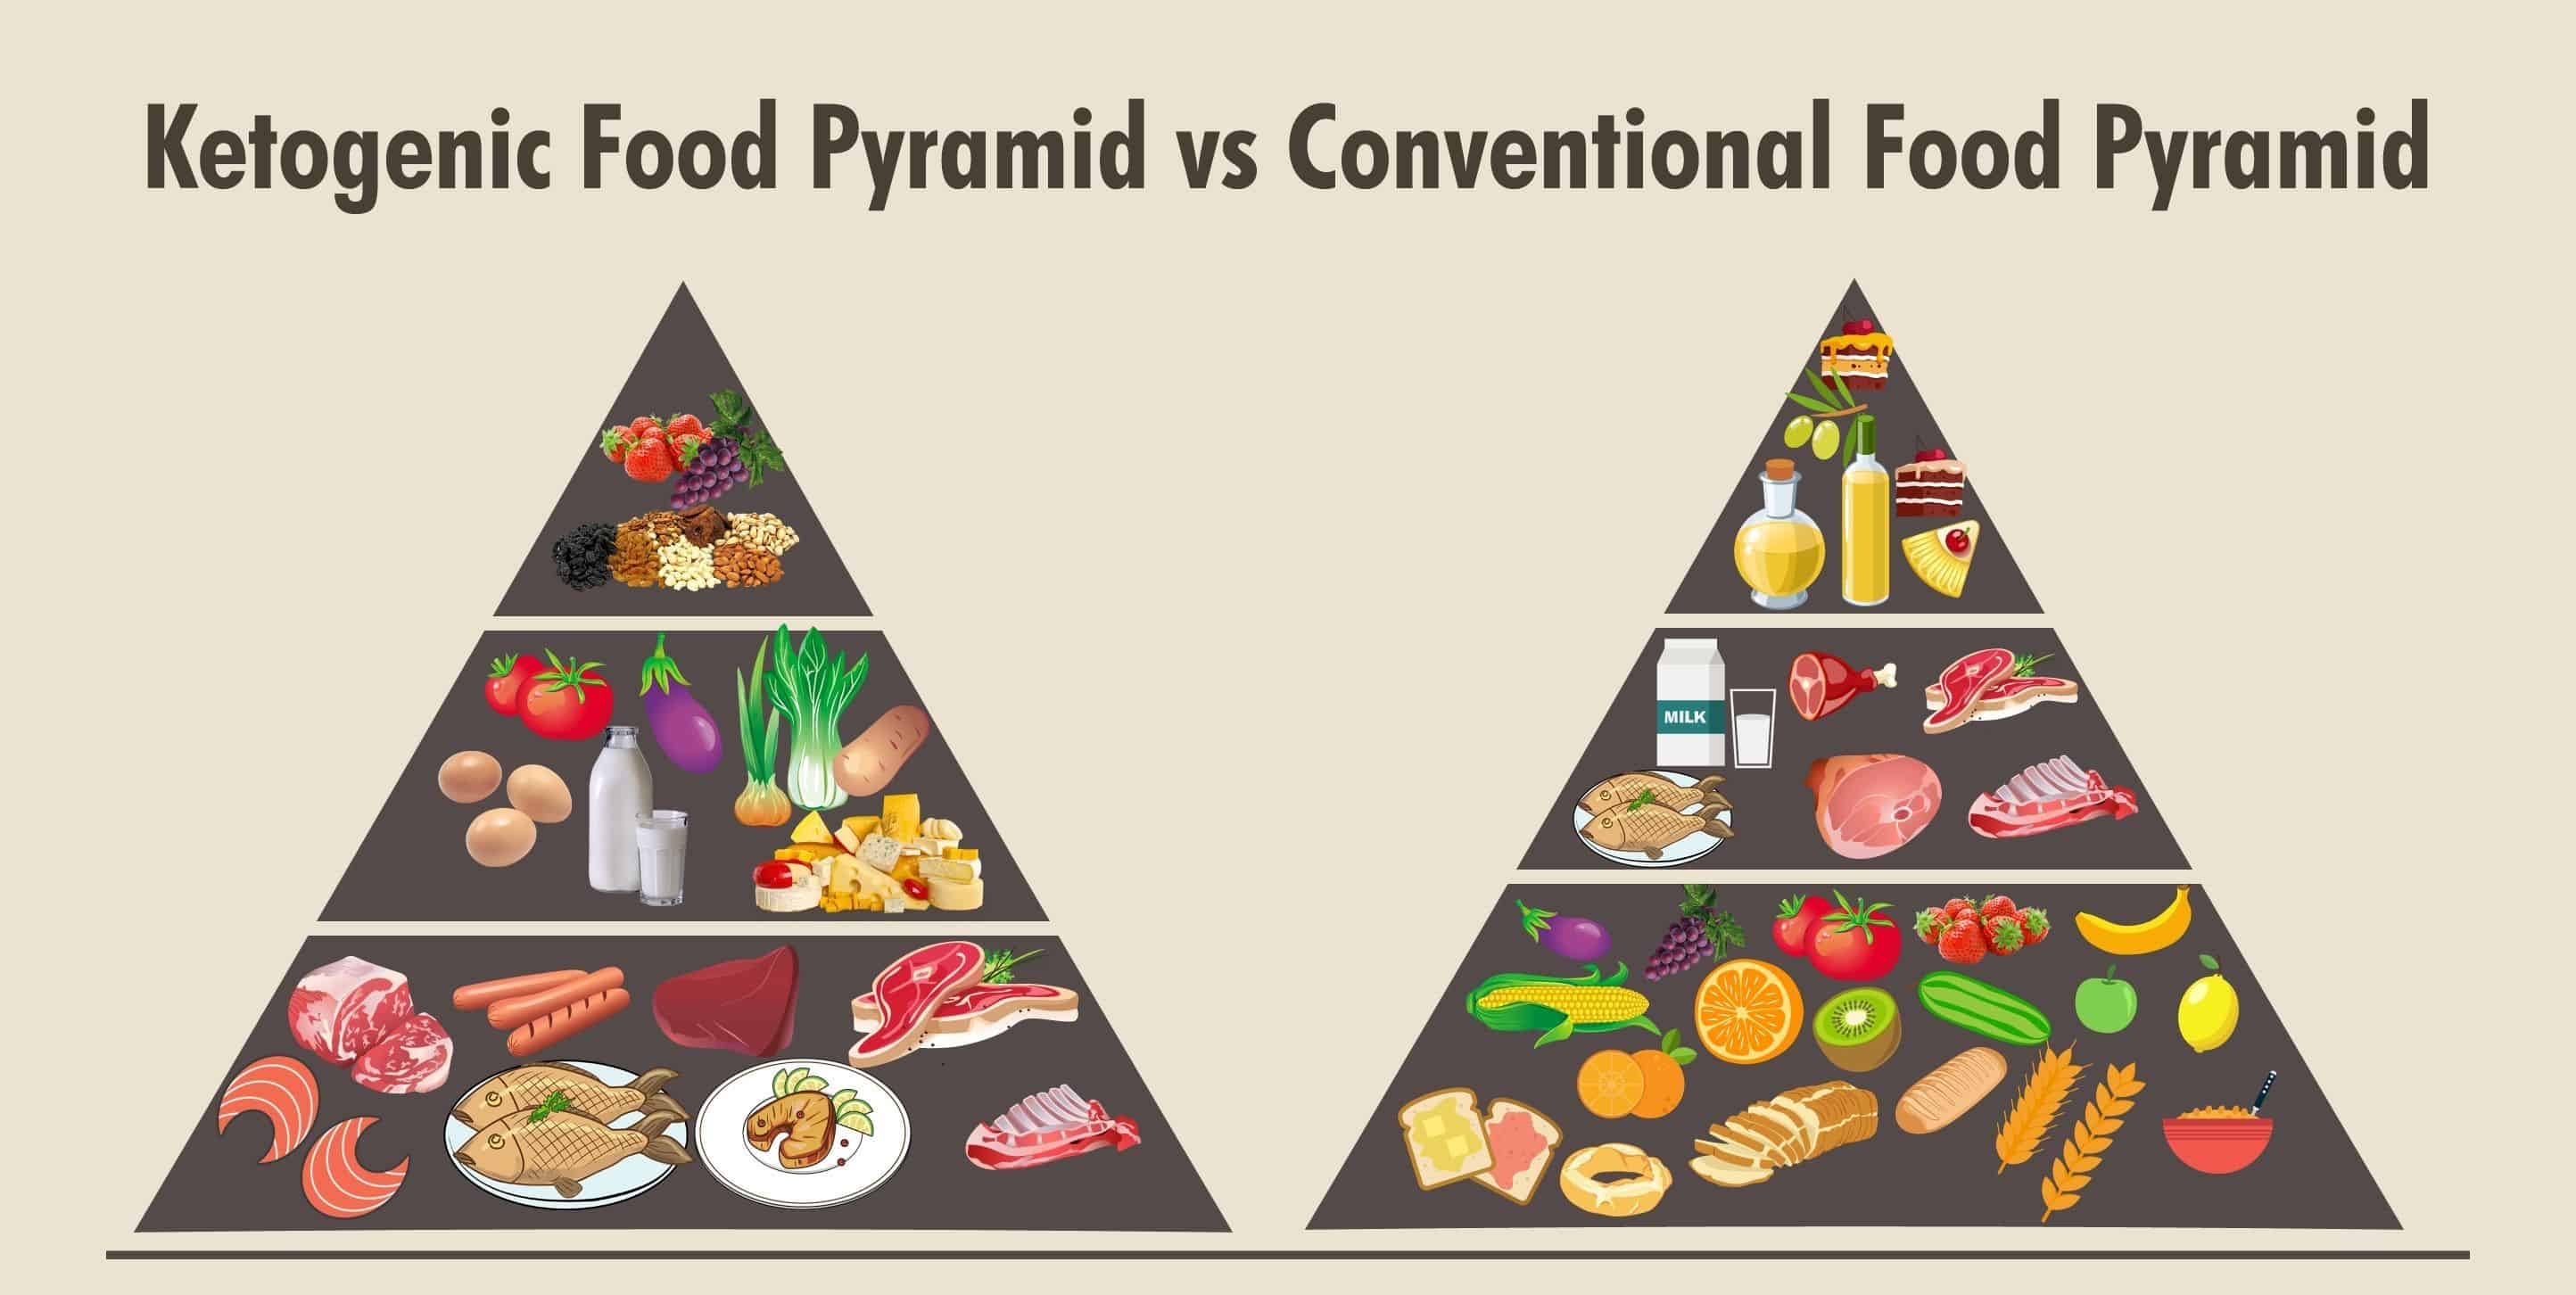 Keto food pyramid vs regular food pyramid